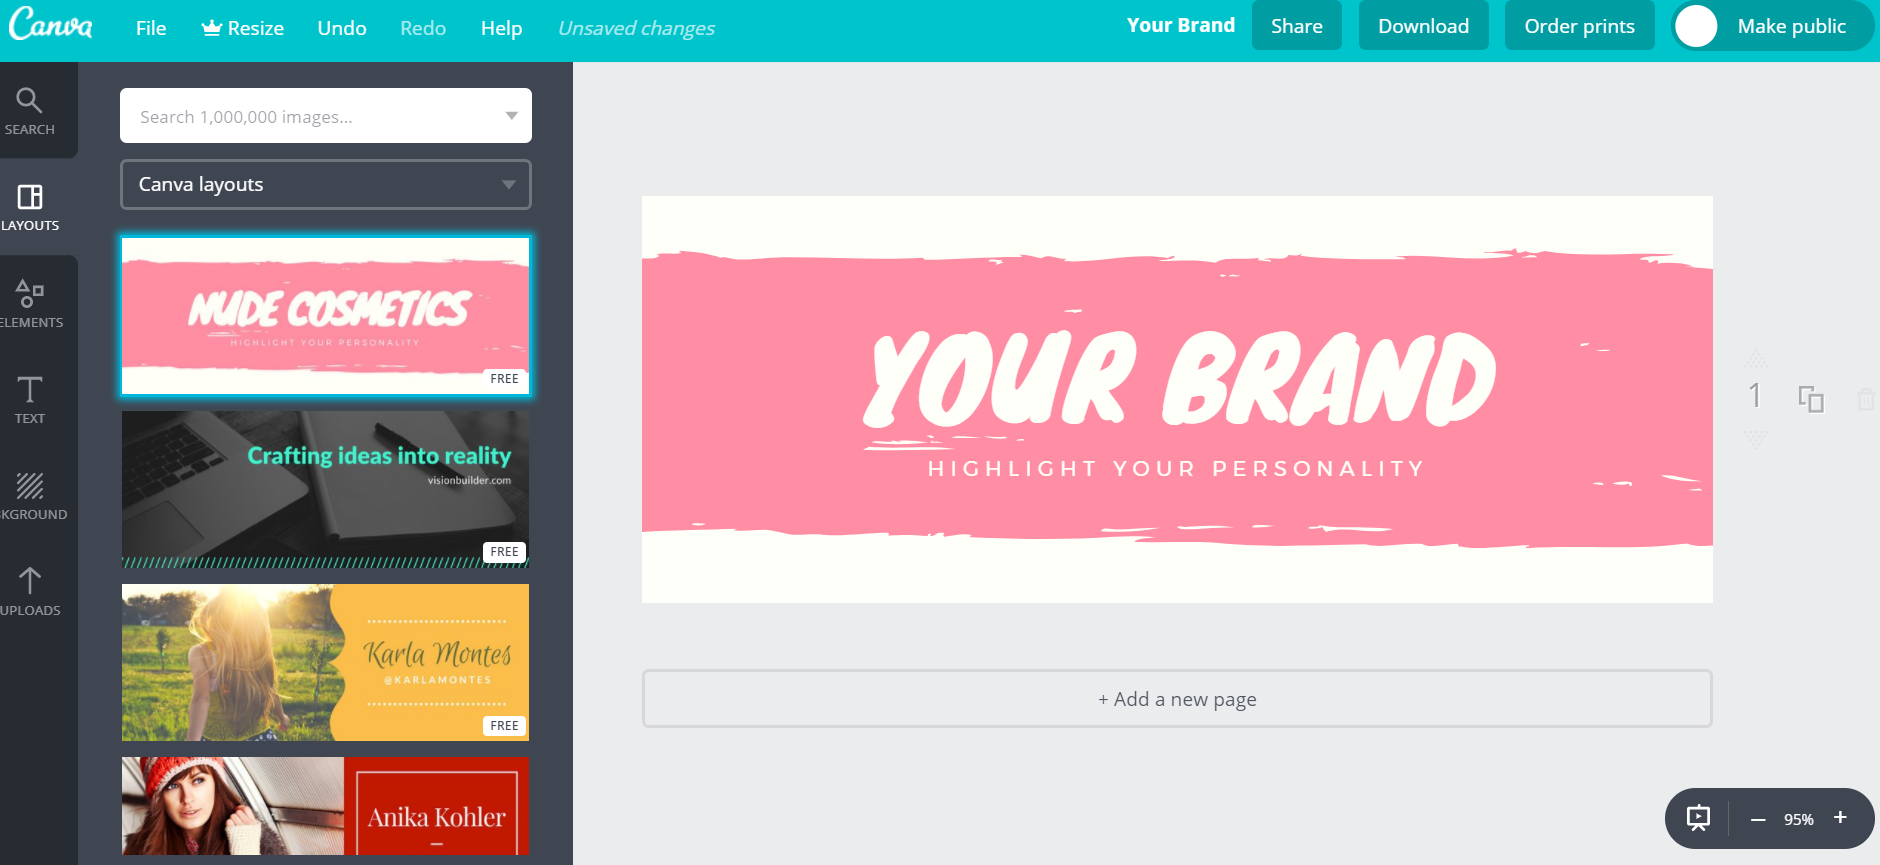 Canva lets users design creative, high-res cover photos on Facebook